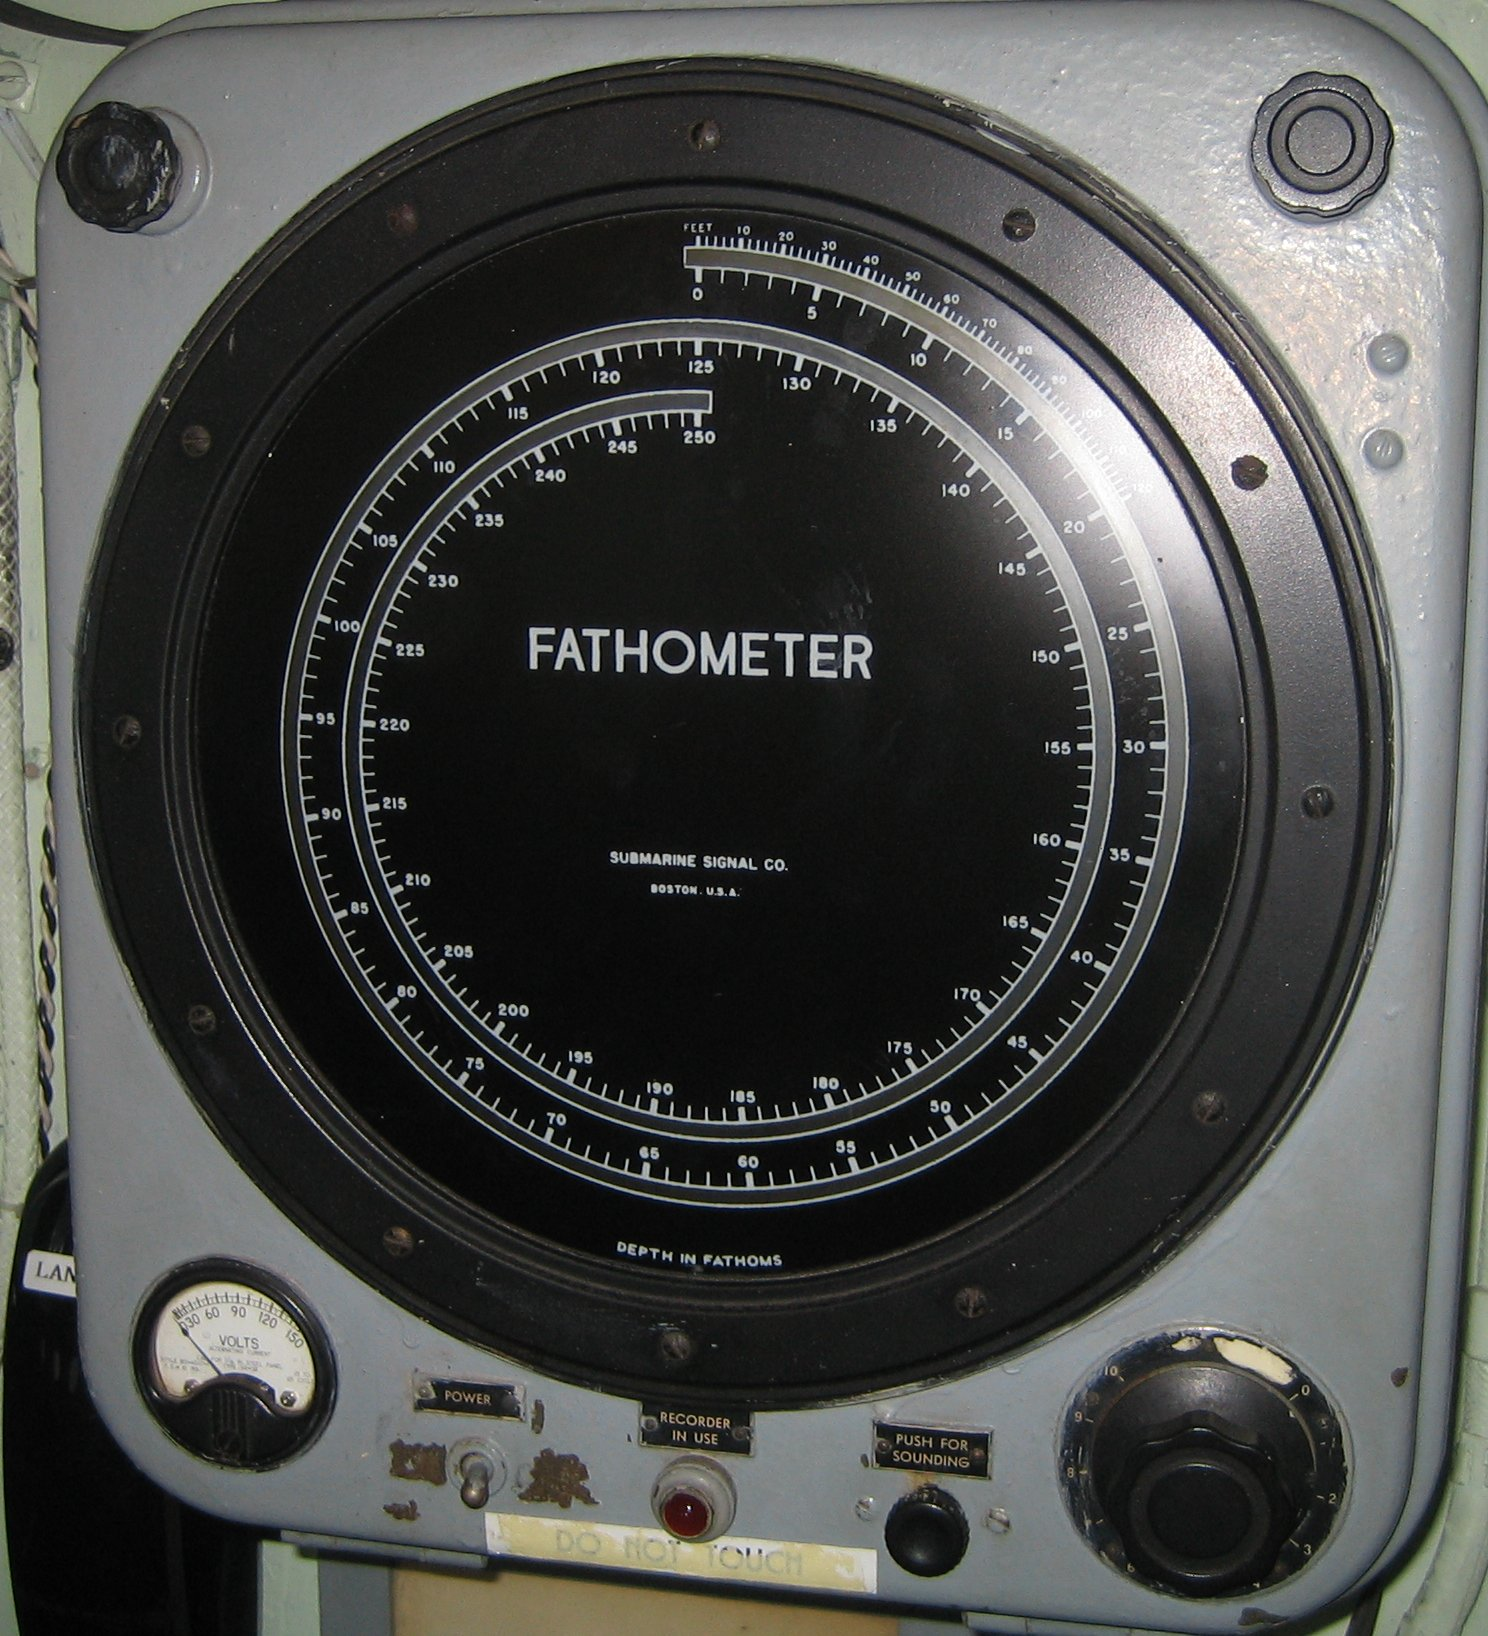 Fathometer, early form of the sonar